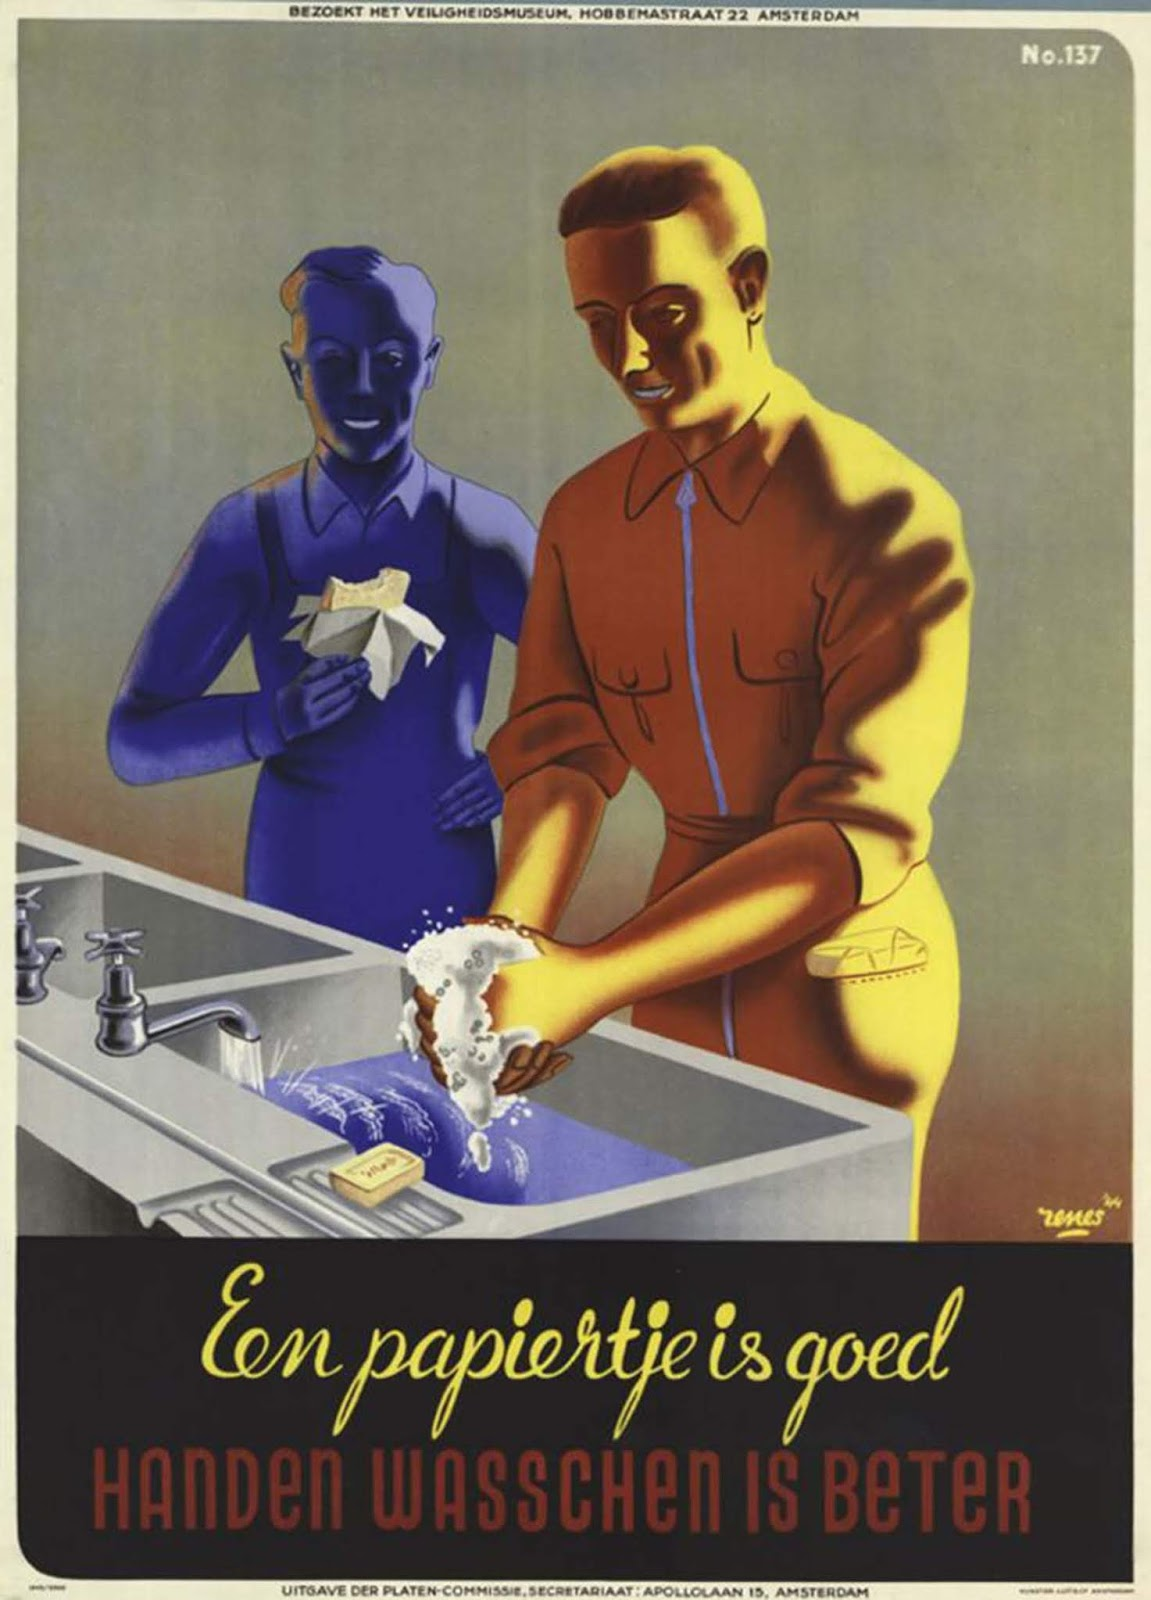 "From the Netherlands: ""Paper is good but hand washing is better."""